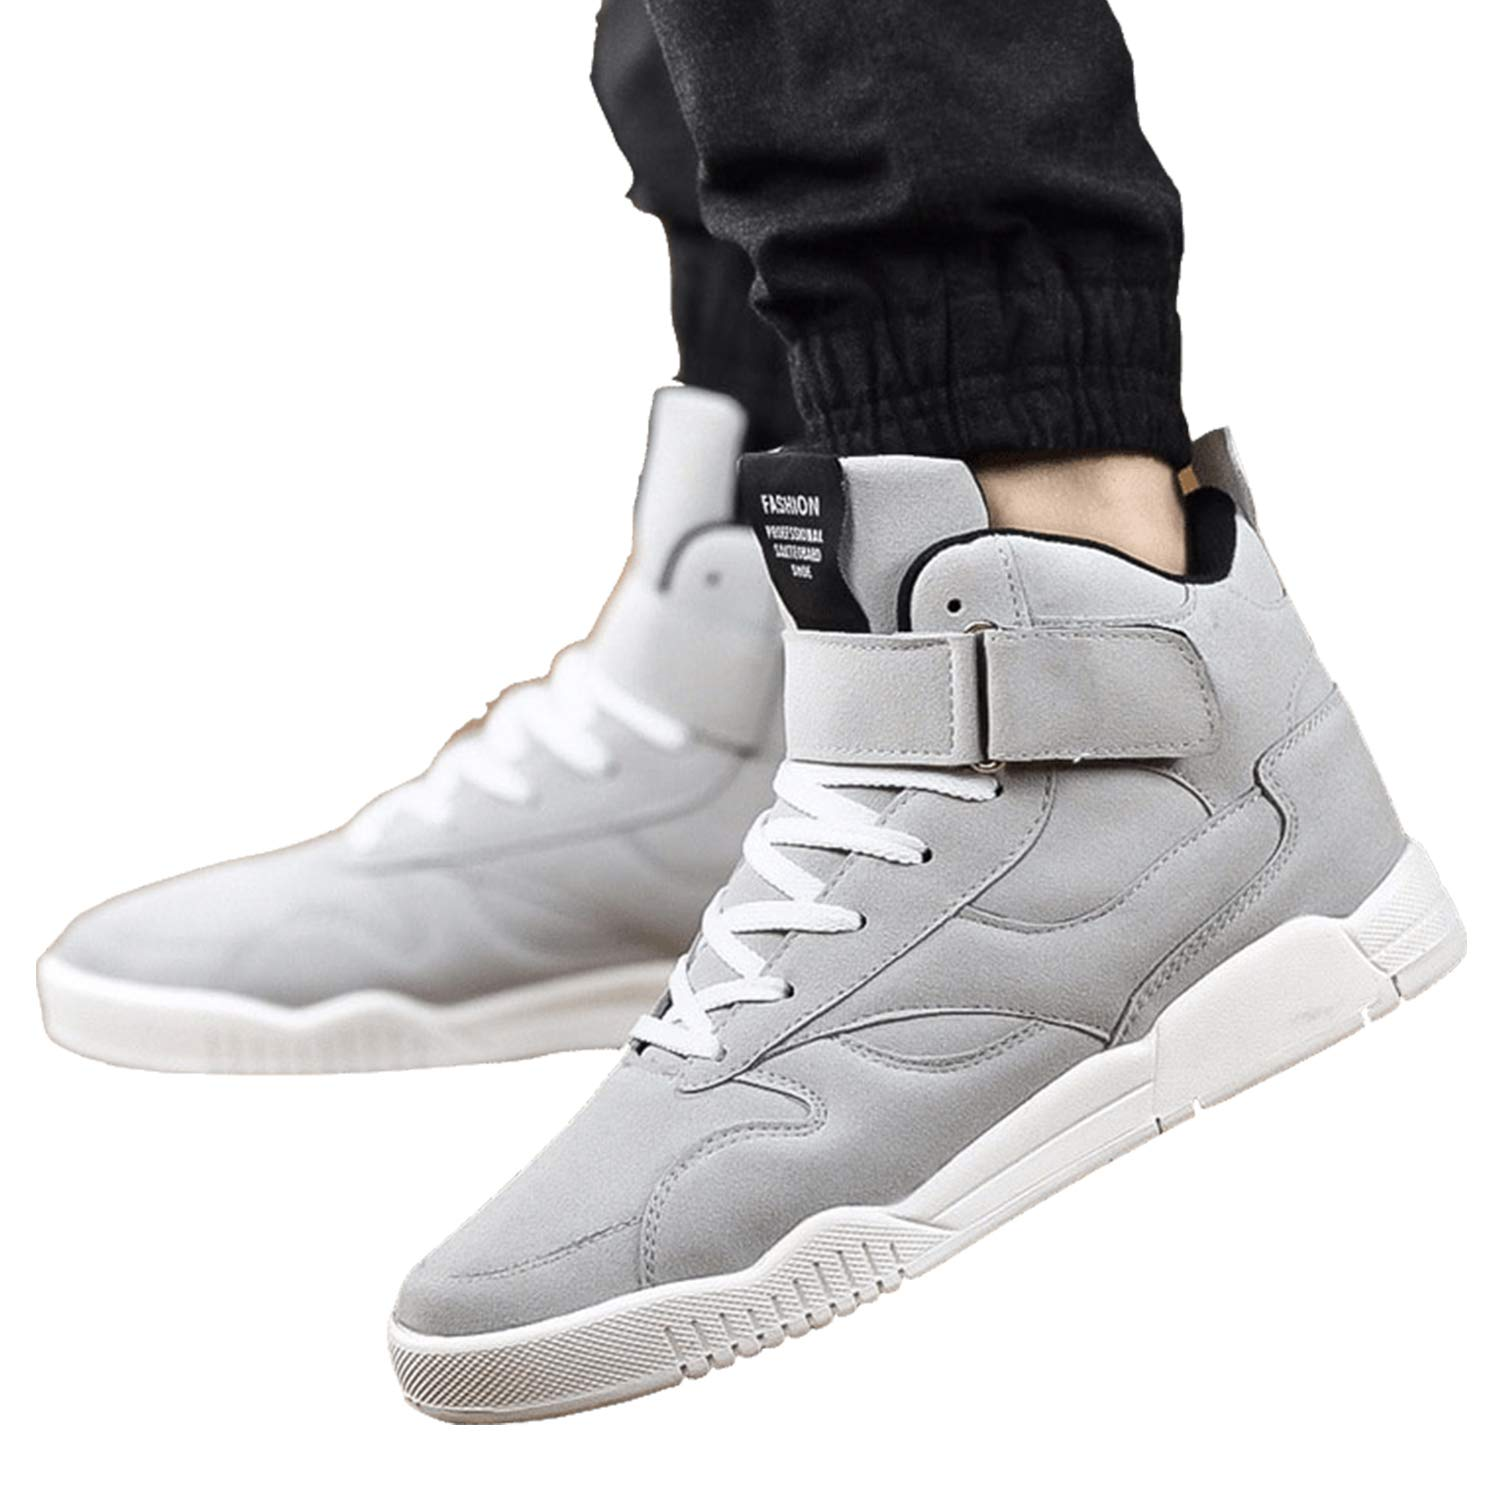 Men/'s Running Casual Breathable Sports Athletic Sneakers leisure High Top shoes